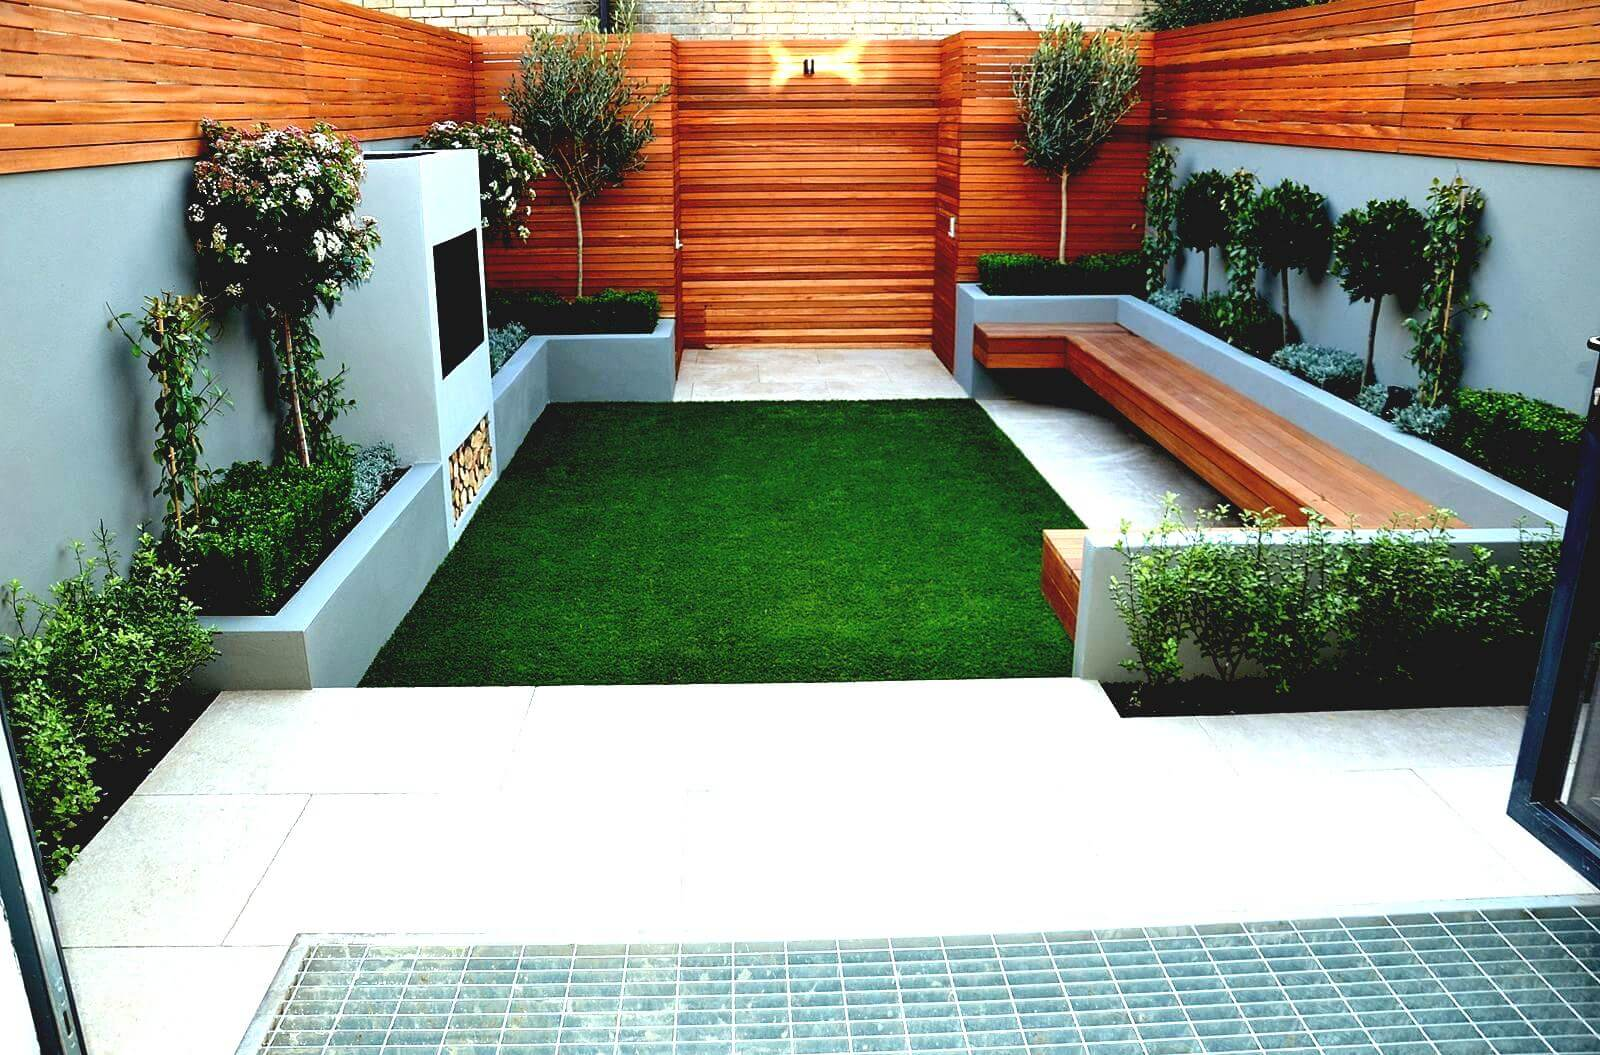 50 Best Front Garden Design Ideas in UK - Home Decor Ideas UK on Backyard Patio Layout id=89211